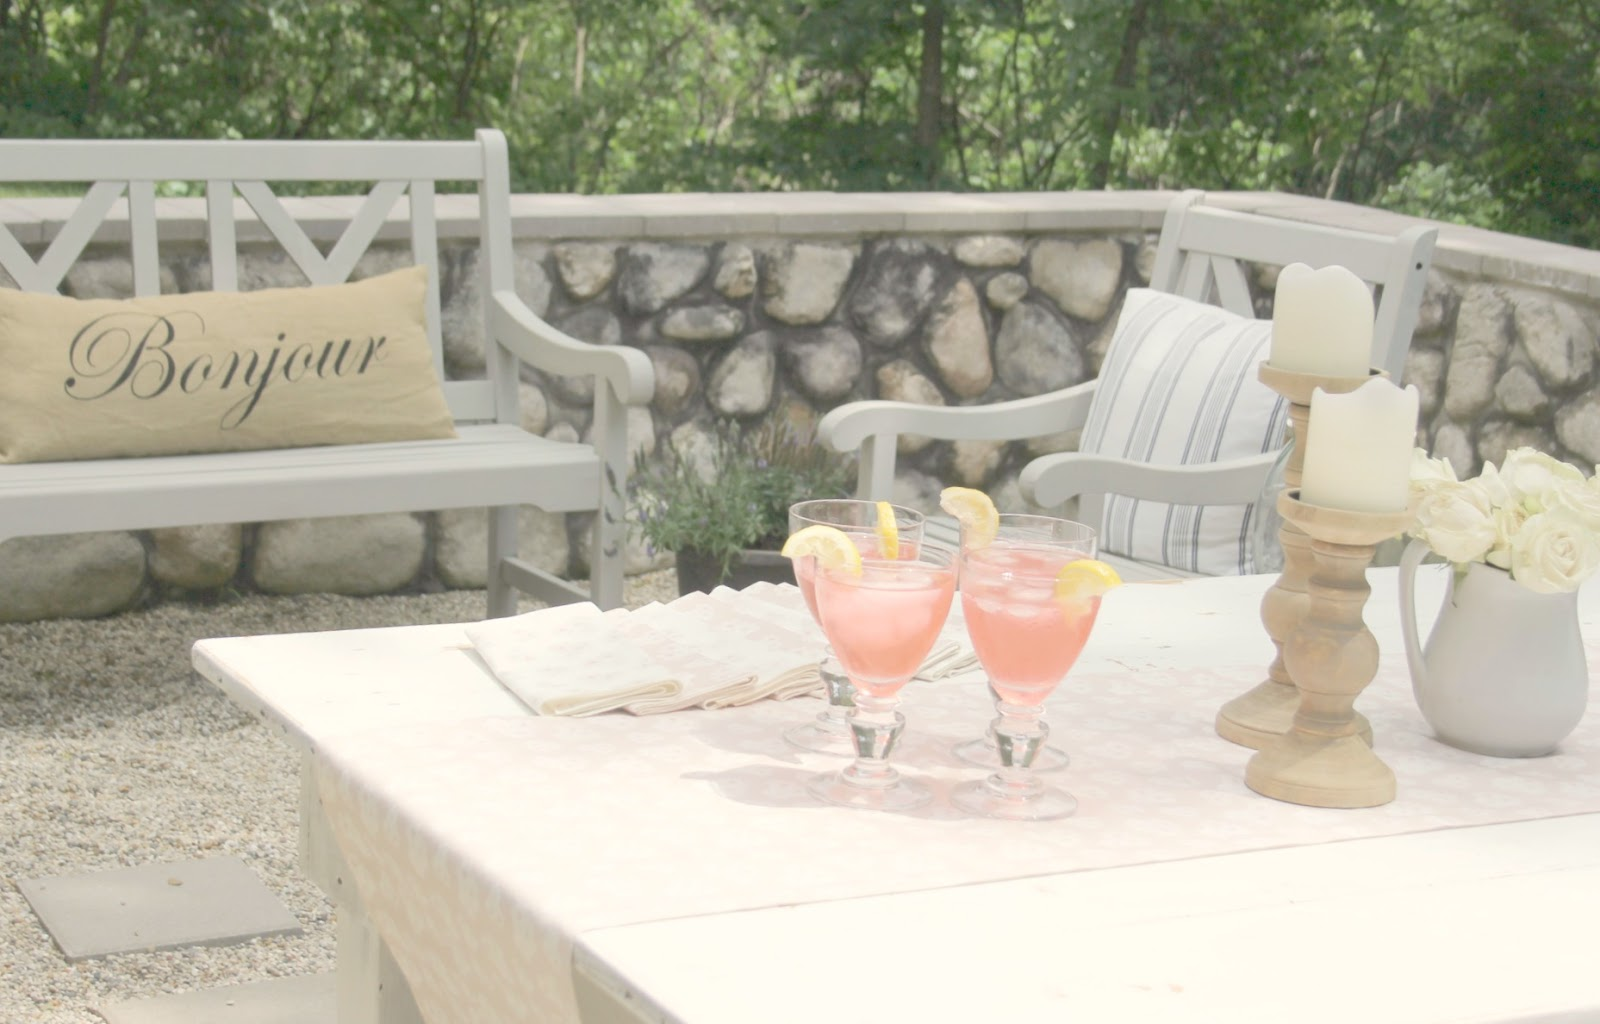 Pink lemonade on white farm table in pea gravel courtyard - Hello Lovely Studio